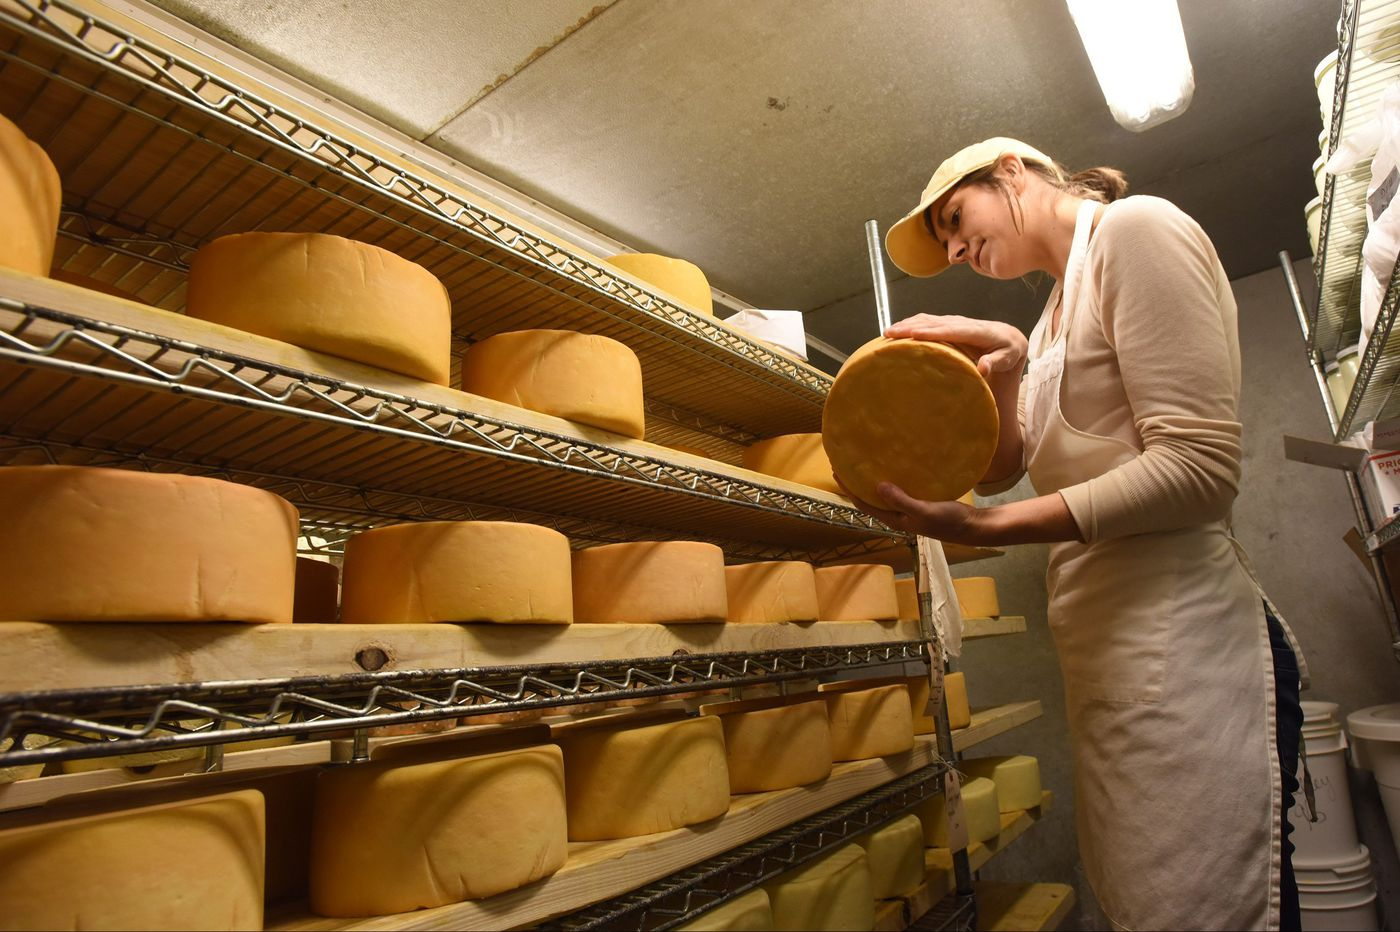 In a languishing dairy industry, farmers look to artisanal cheese as a solution